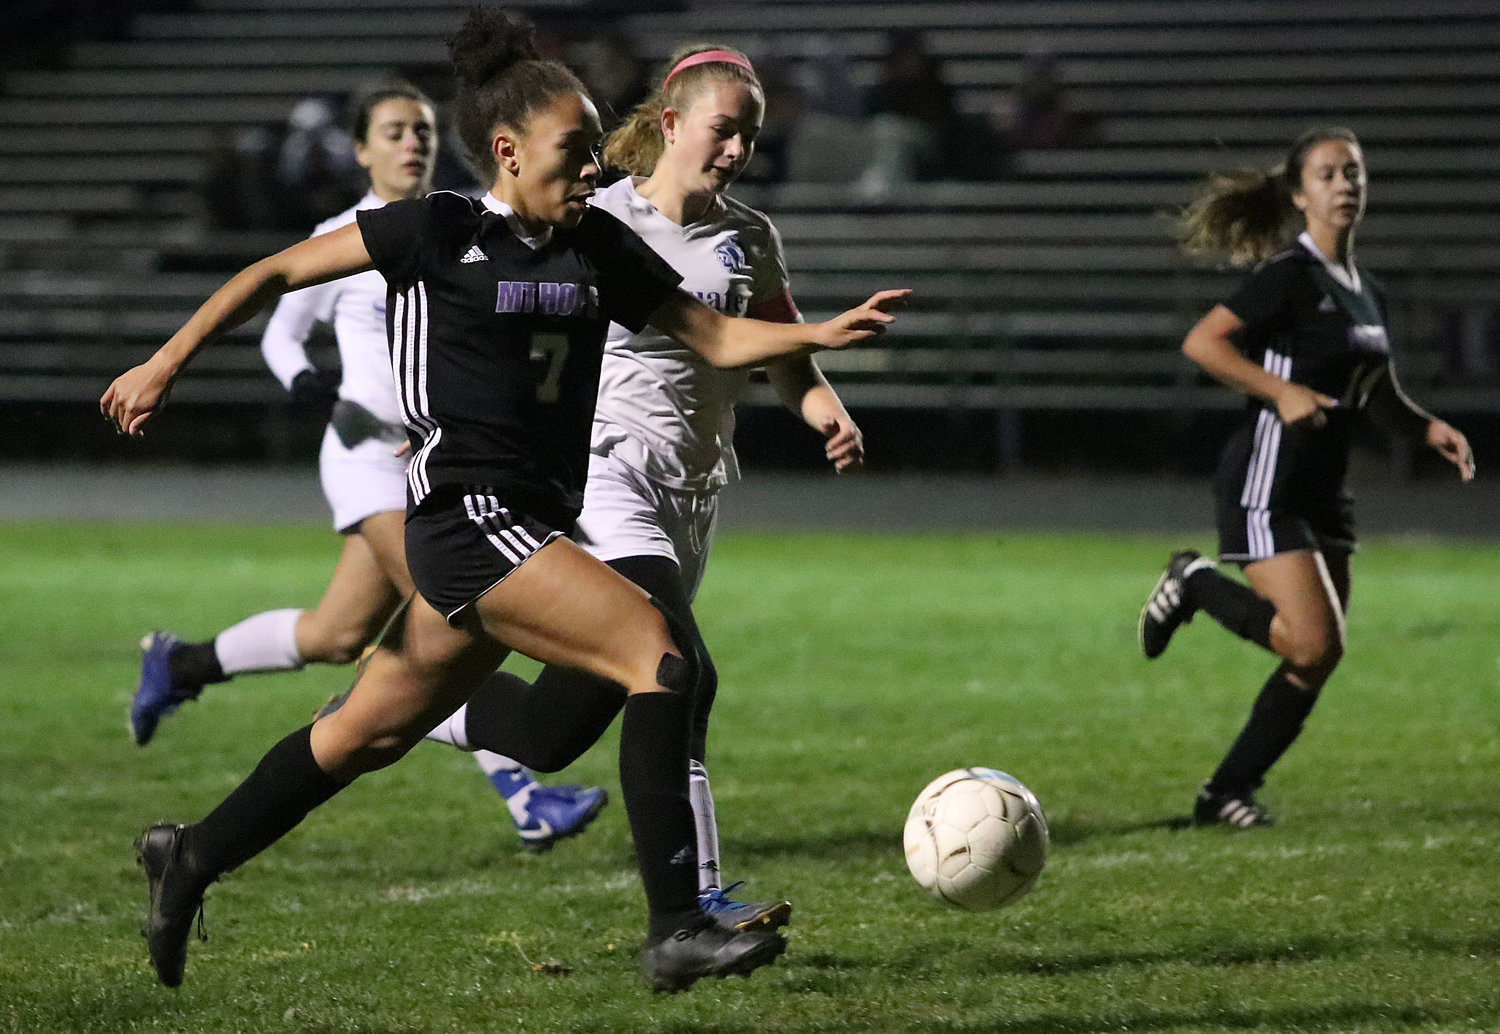 Angela Lee speeds by a defender for a scoring chance in the first half. She scored the Huskies first goal of the game.